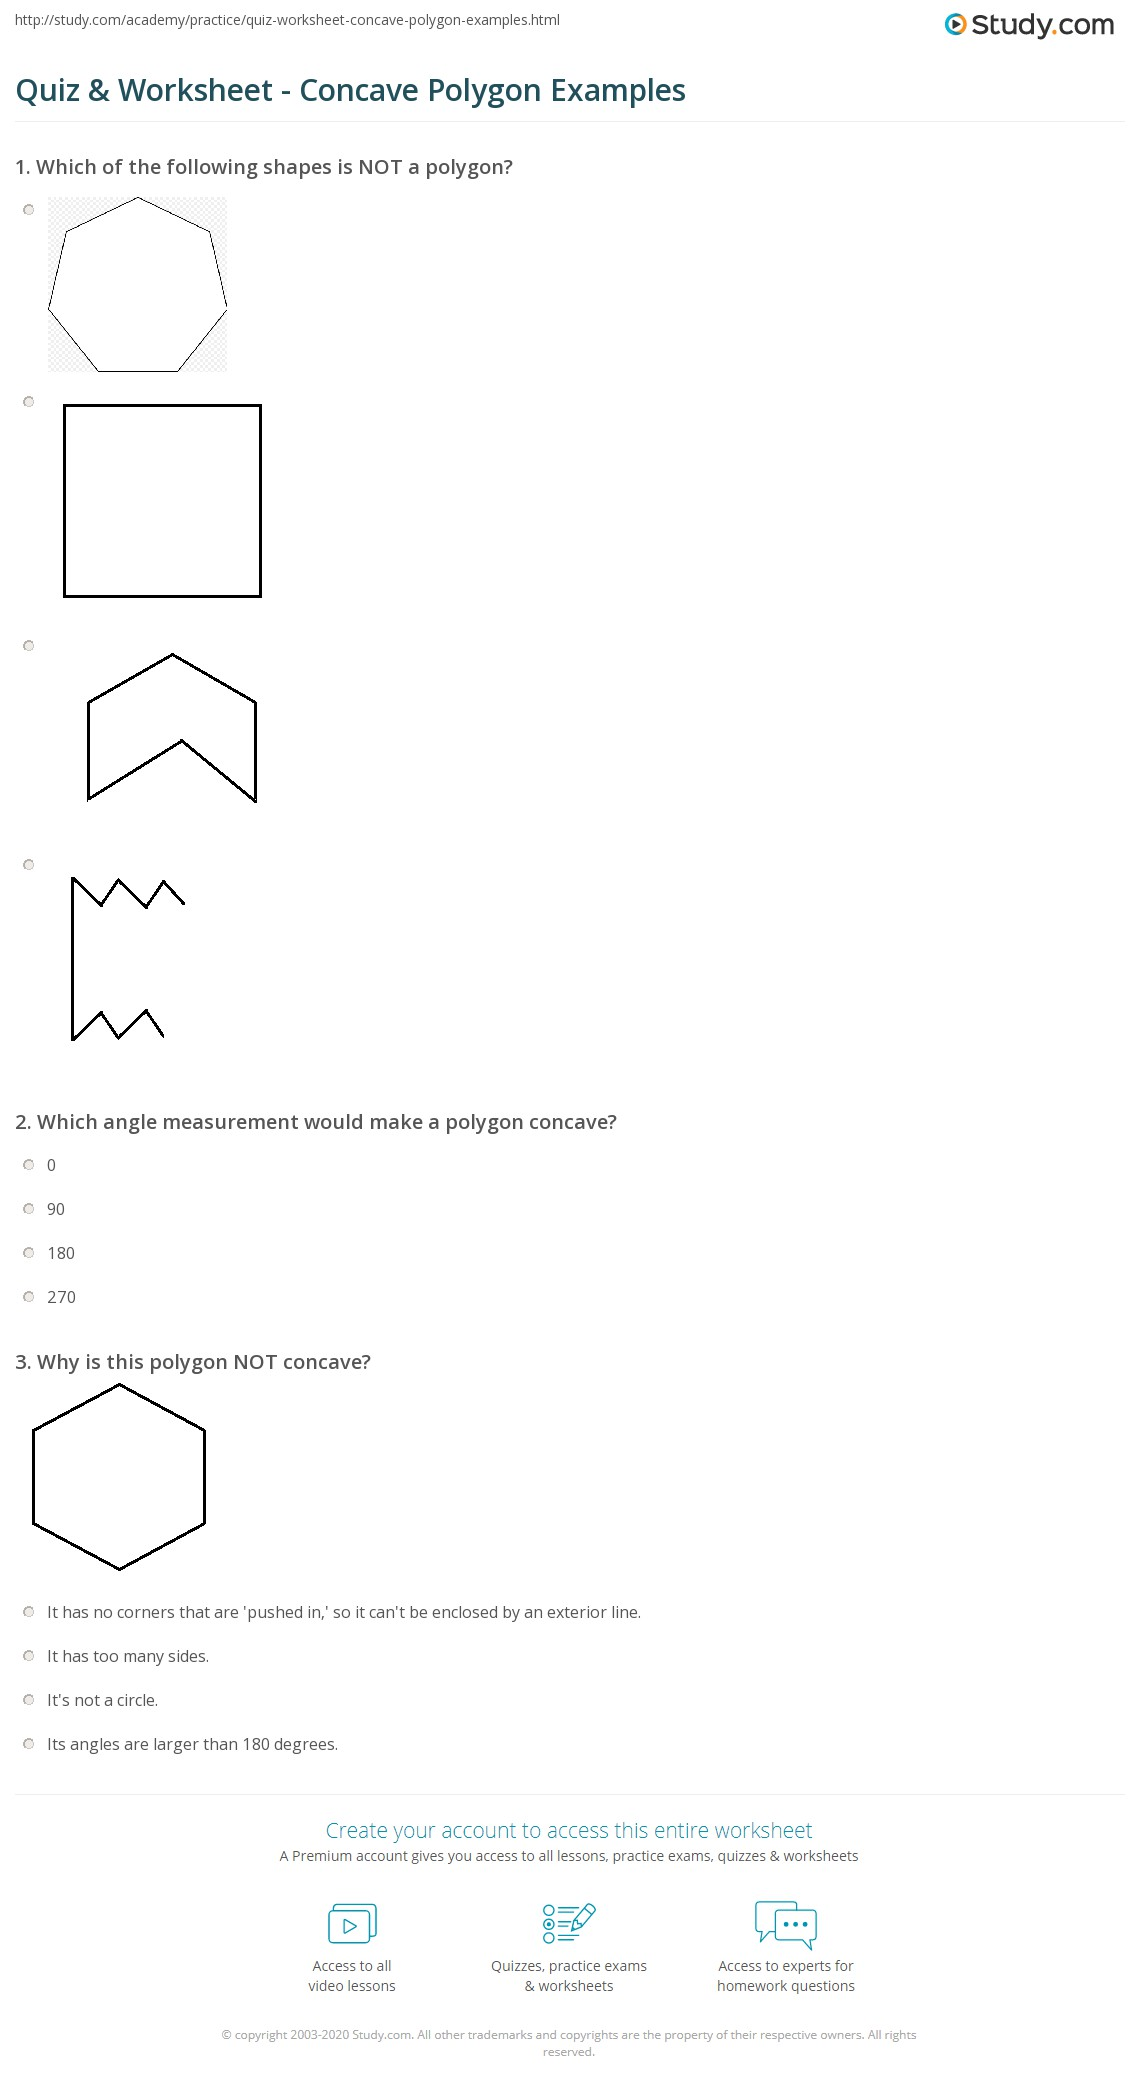 Polygon Pictures Worksheet | Images Guru